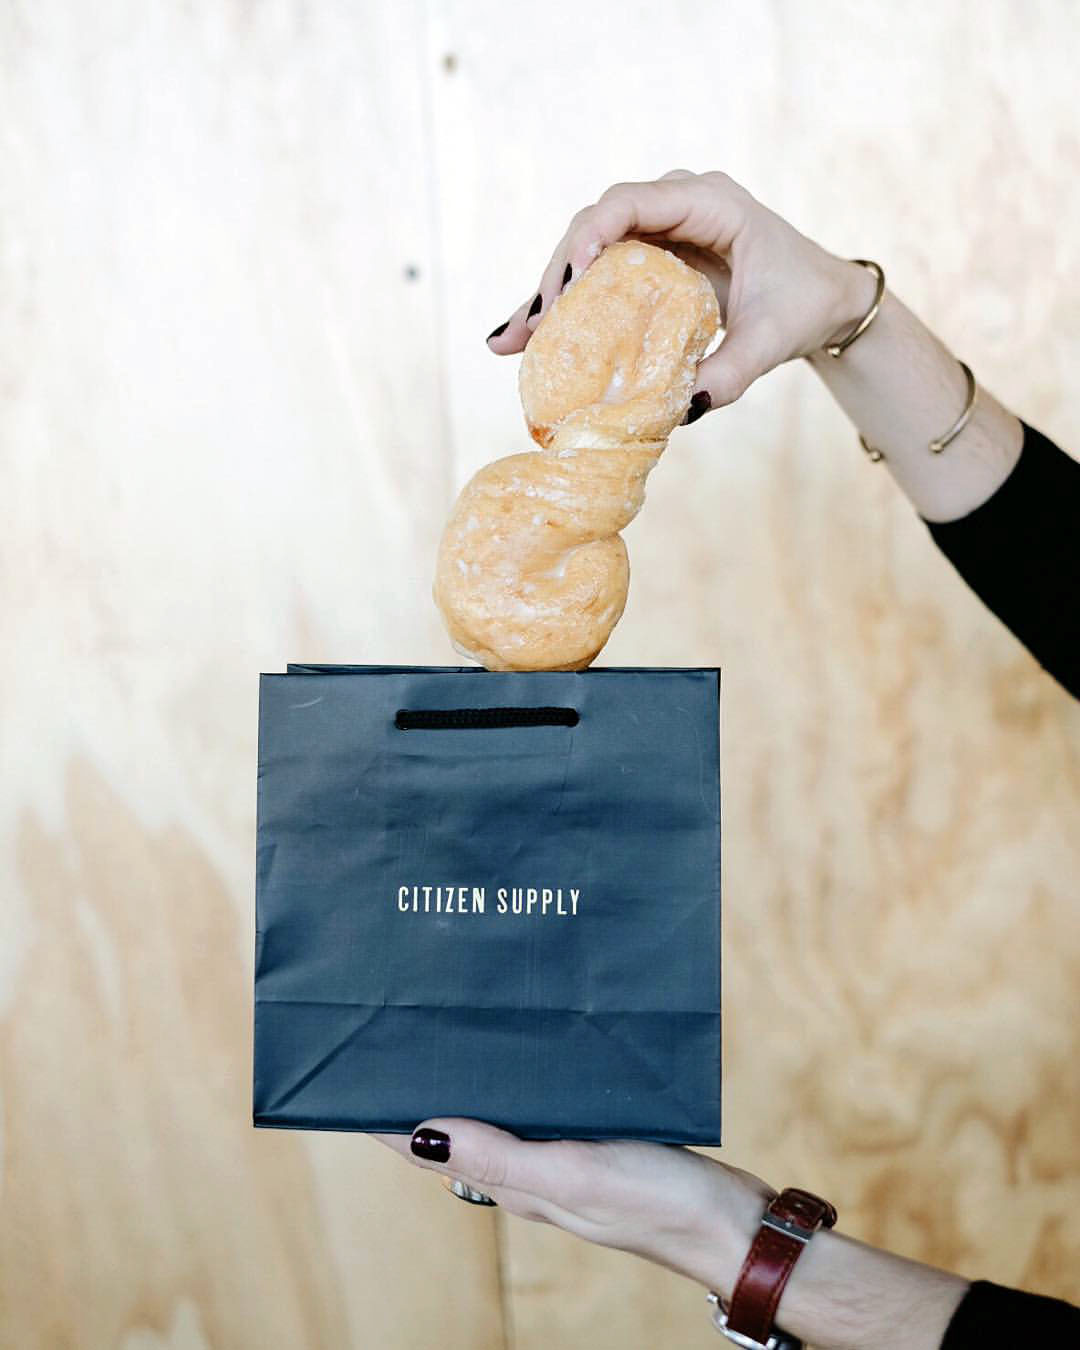 Citizen Supply retail packaging and store bags show the branding and logo design in gold letters on black bag and a girl pulling out a donut.